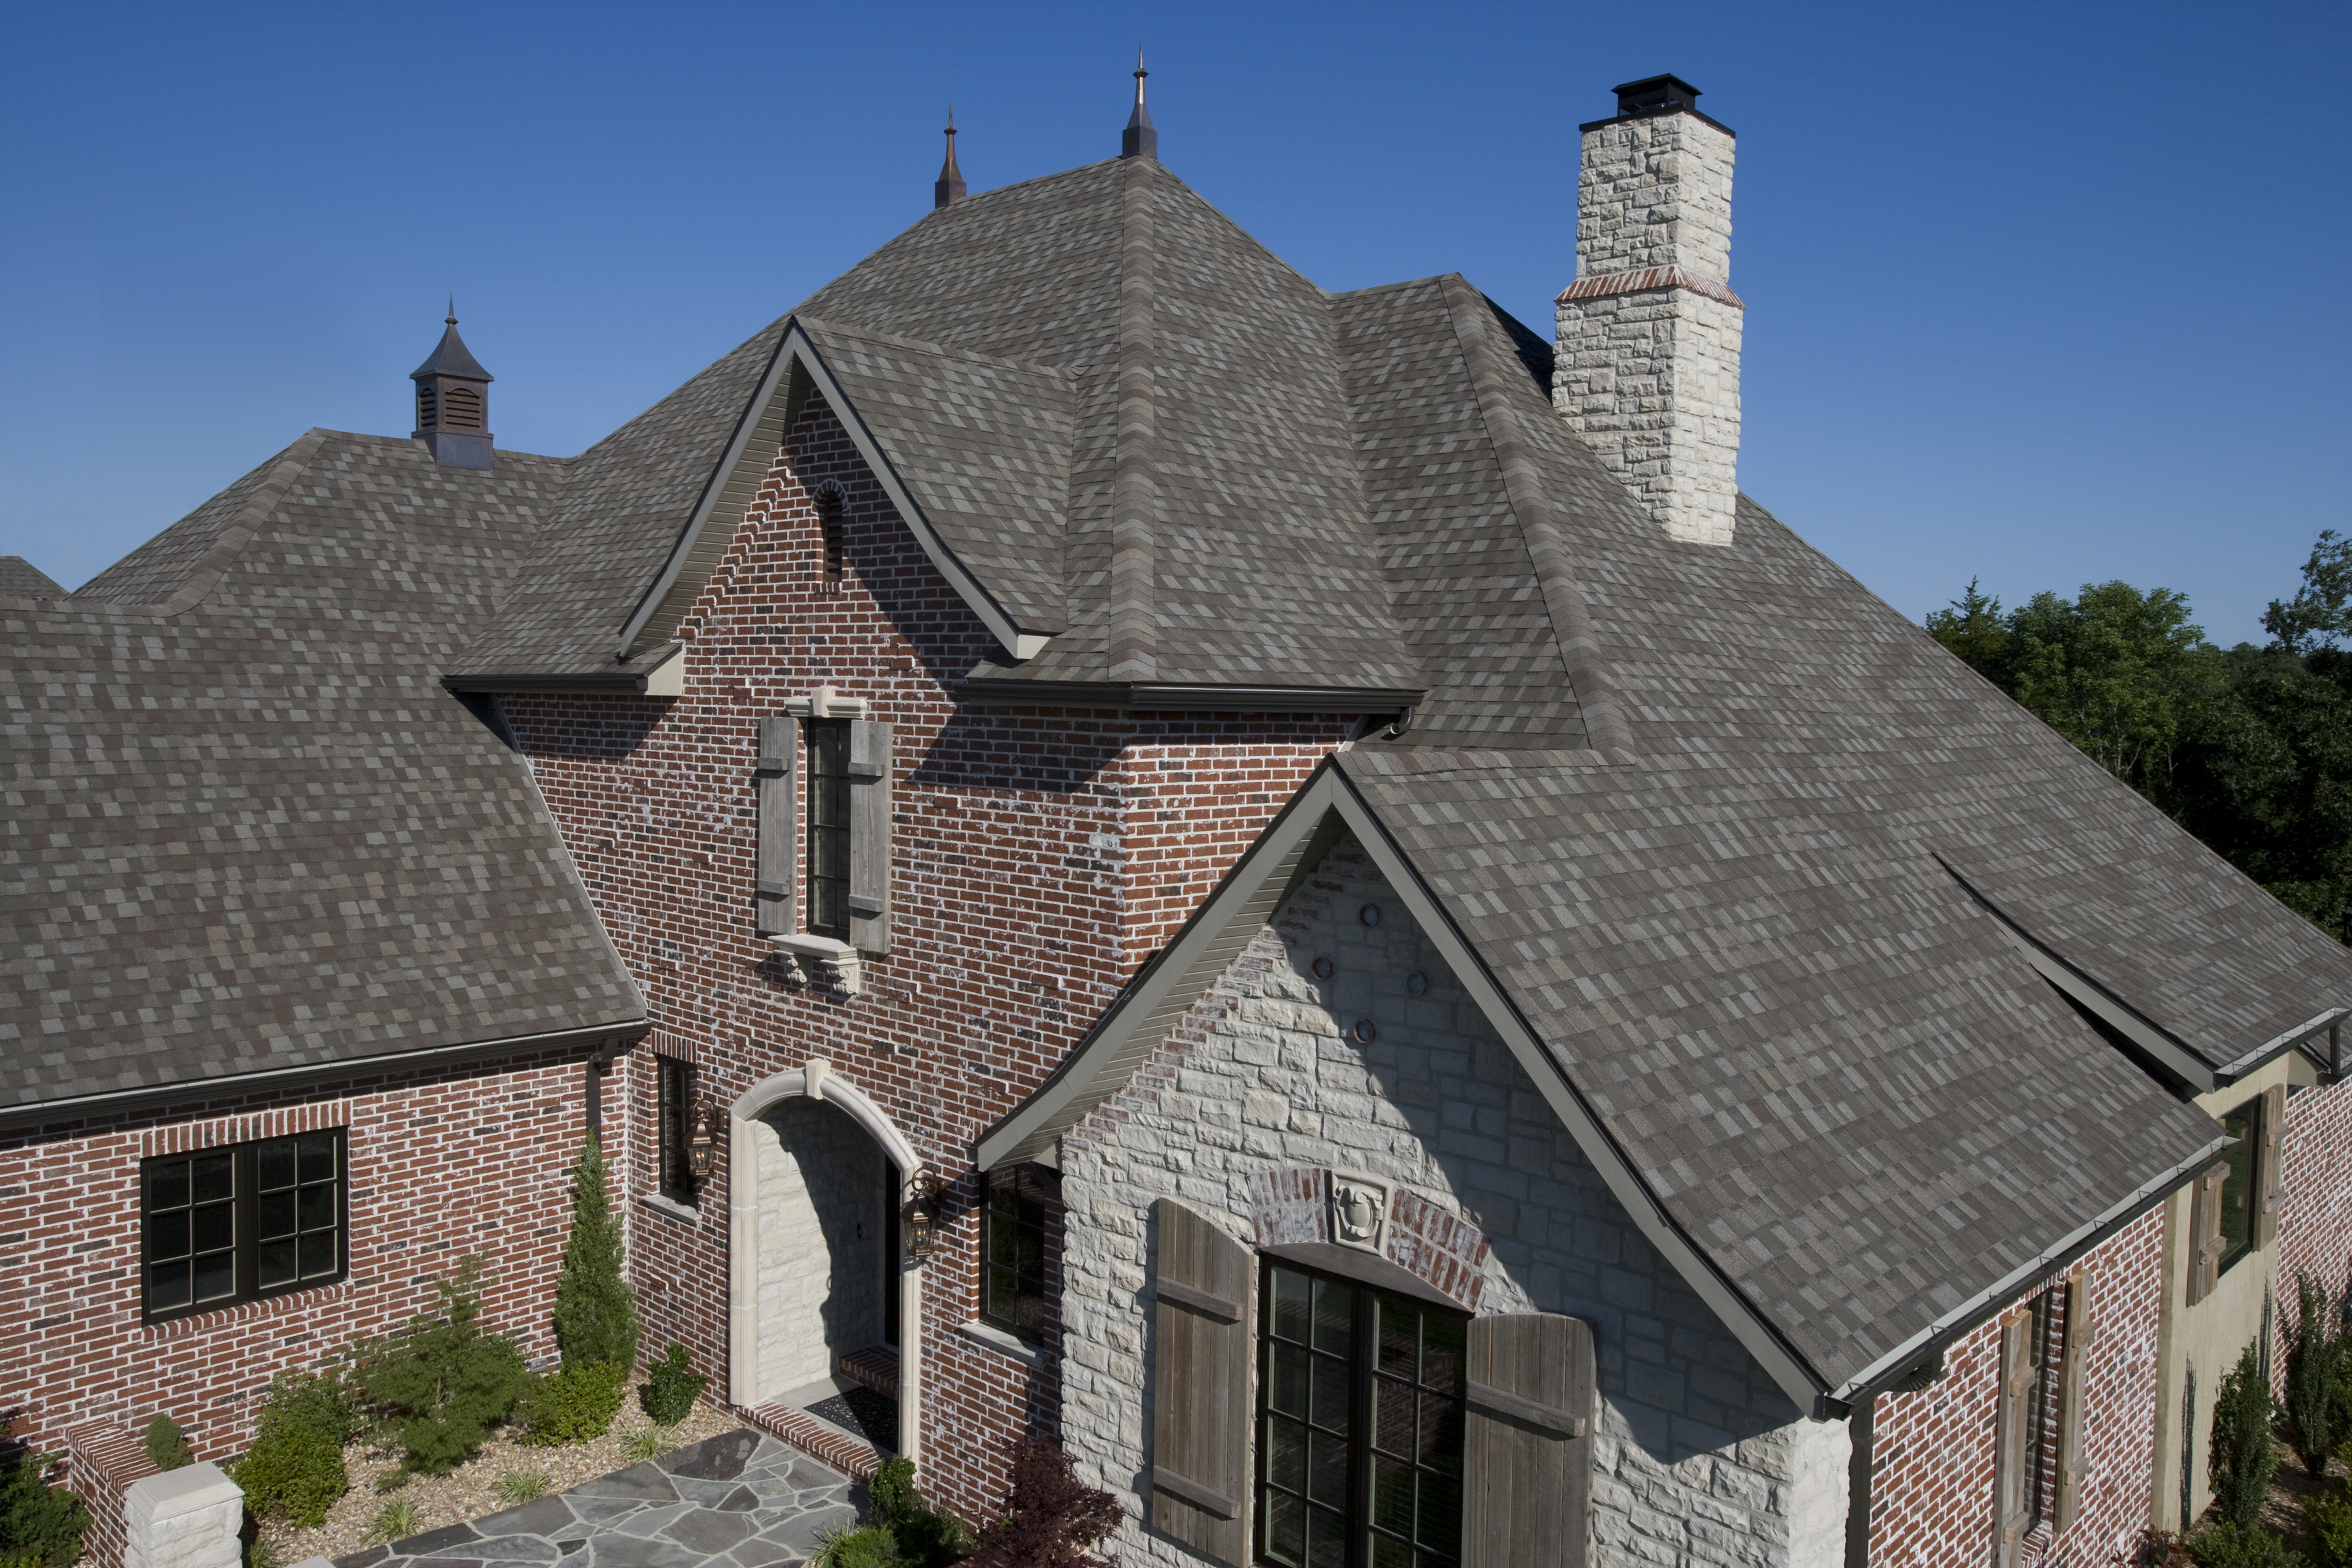 Beautiful Homes Start with Heritage Shingles: Tamko Heritage 30 Year Shingles | Heritage Shingles | Door Shims